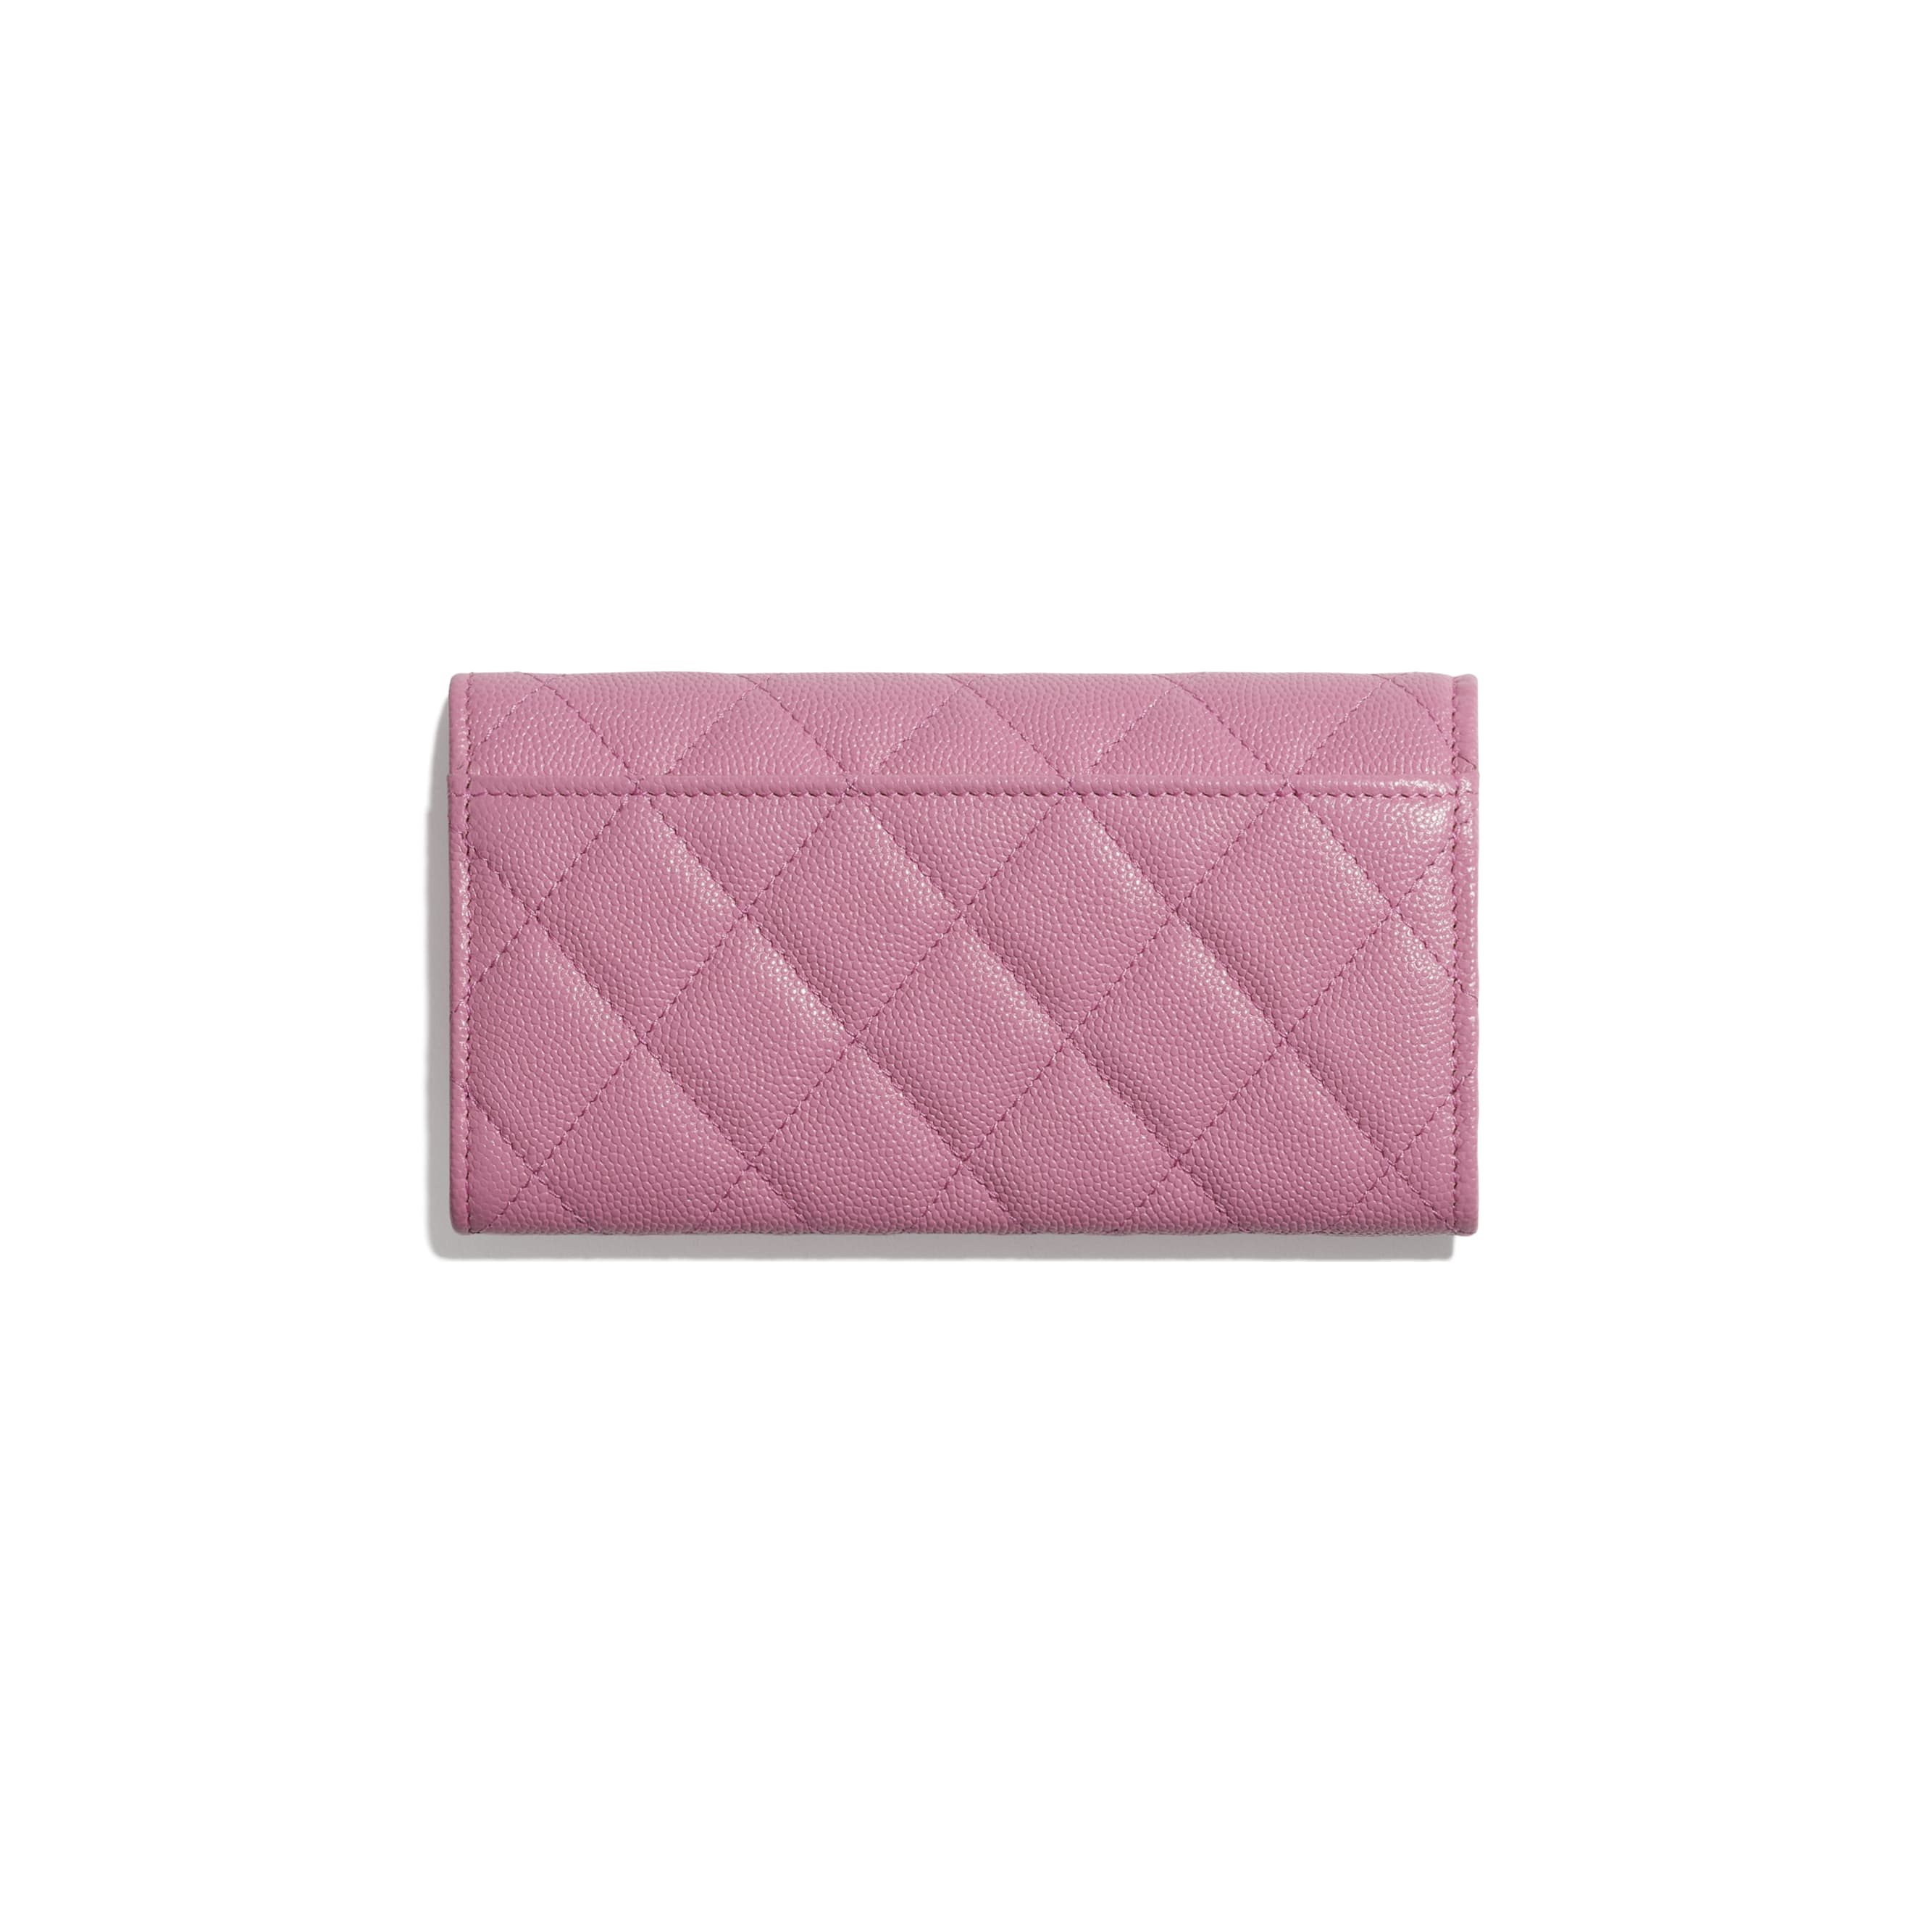 Flap Wallet - Pink - Grained Calfskin & Laquered Gold-Tone Metal - CHANEL - Alternative view - see standard sized version